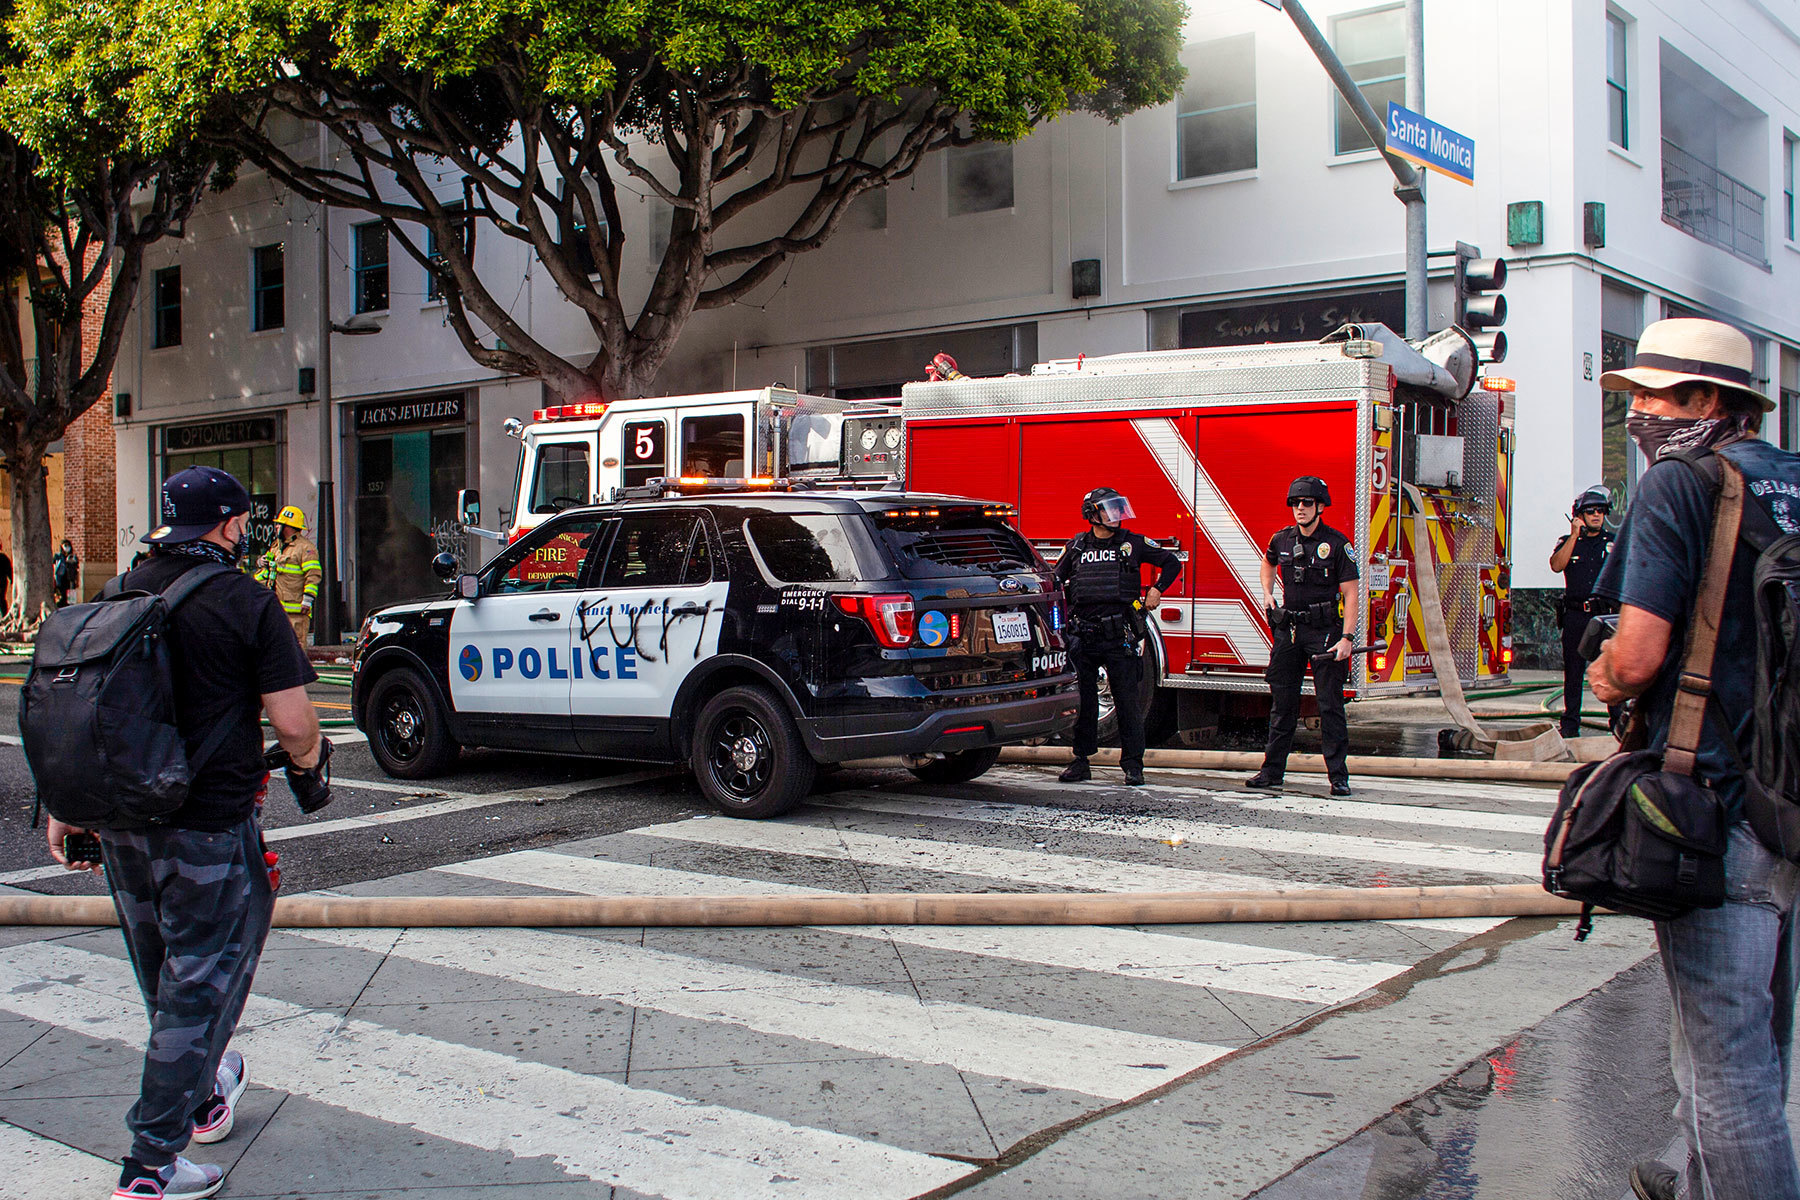 A Police cruiser is cornered by looters hurling missiles at the Police officers before backup arrives, Santa Monica, California Sunday, May 31, 2020. Corner of Santa Monica Blvd and 4th Street. The death of George Floyd, an African-American man in police custody, has ignited protests across the country.